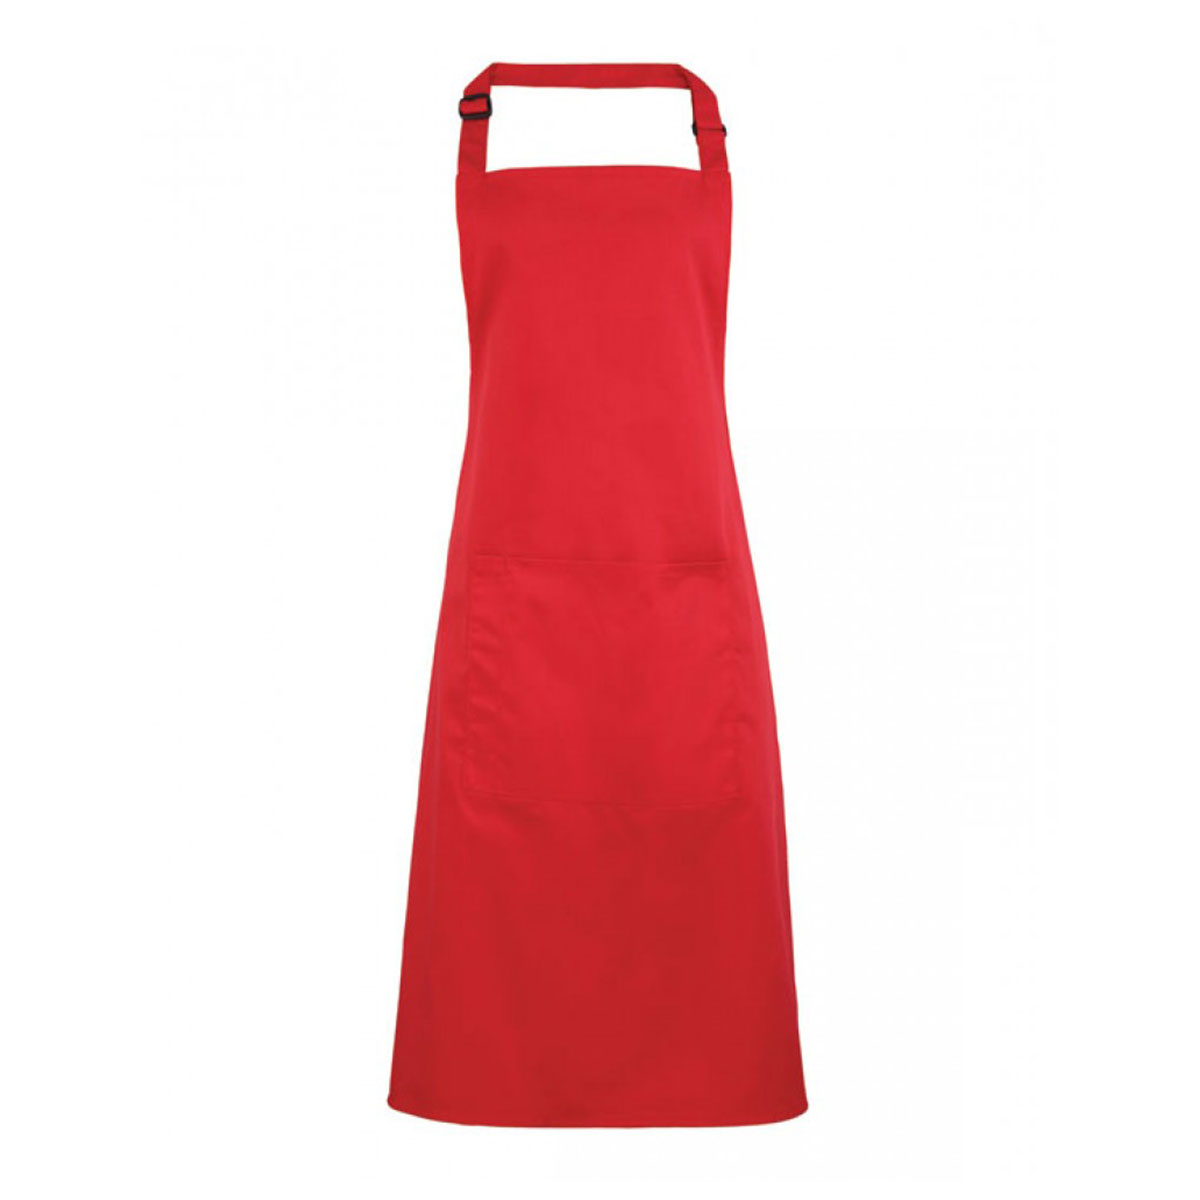 Colours Bib Apron with Pocket - pr154-strawberry-red